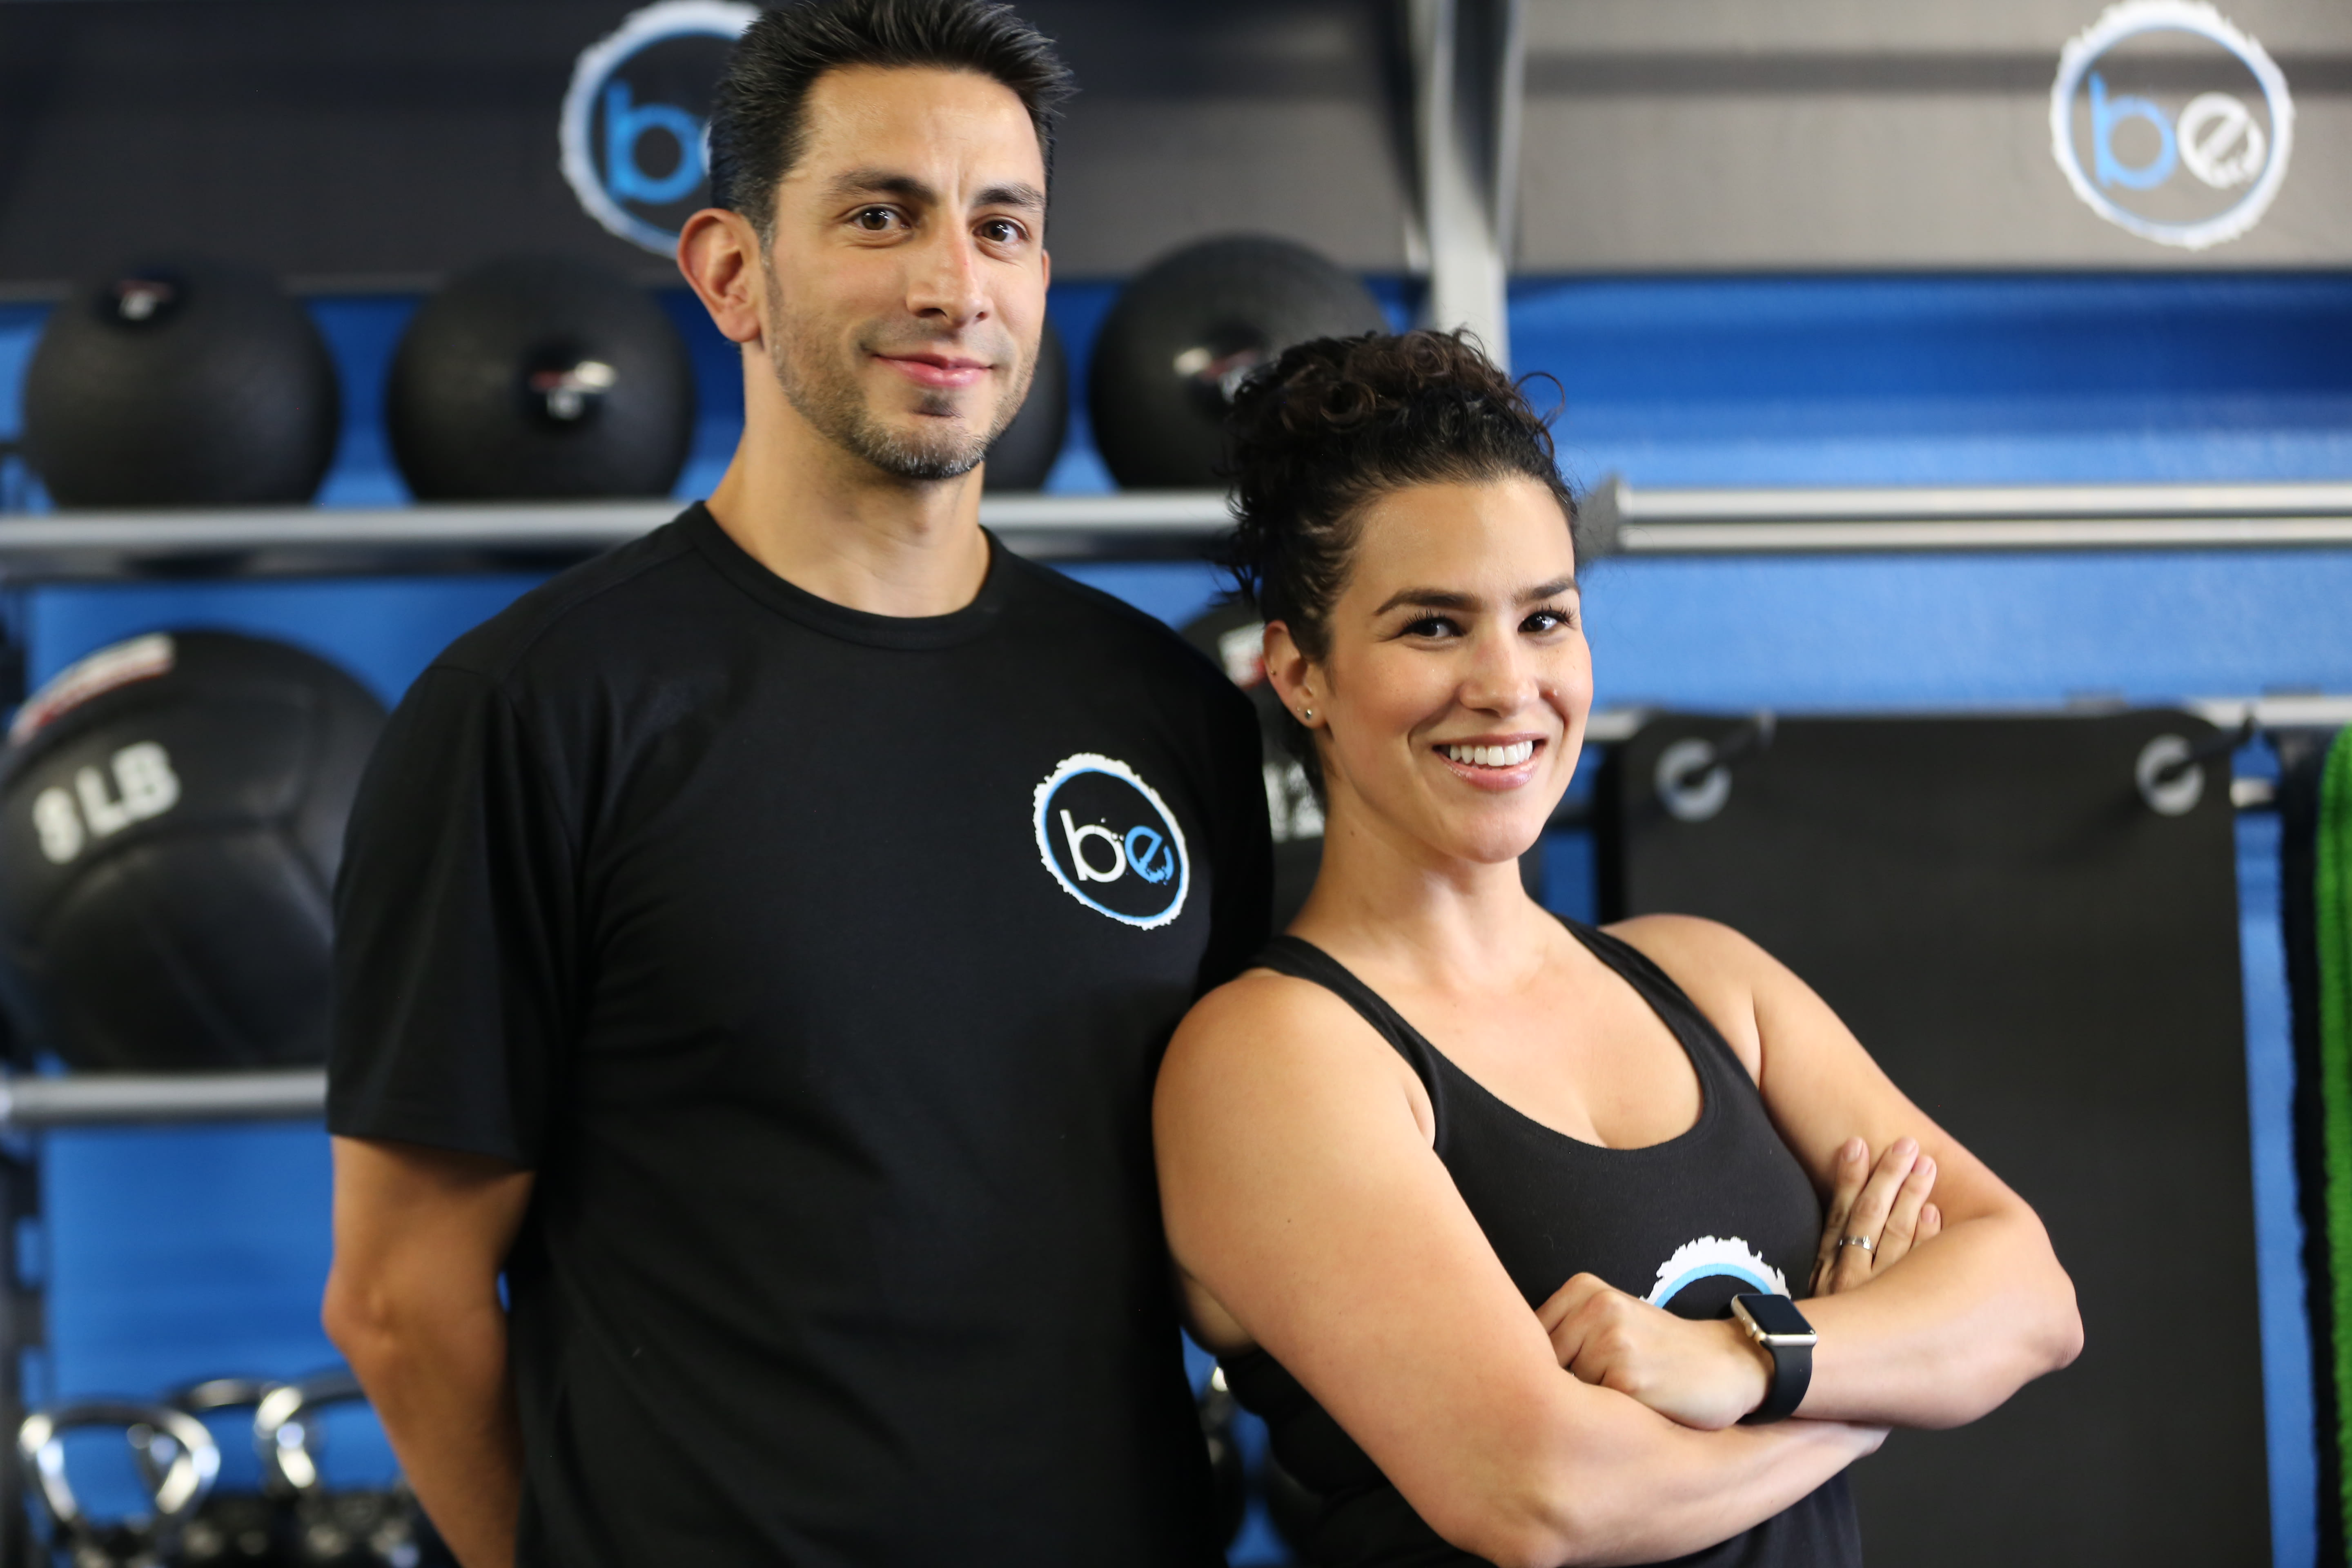 Personal Training near Visalia